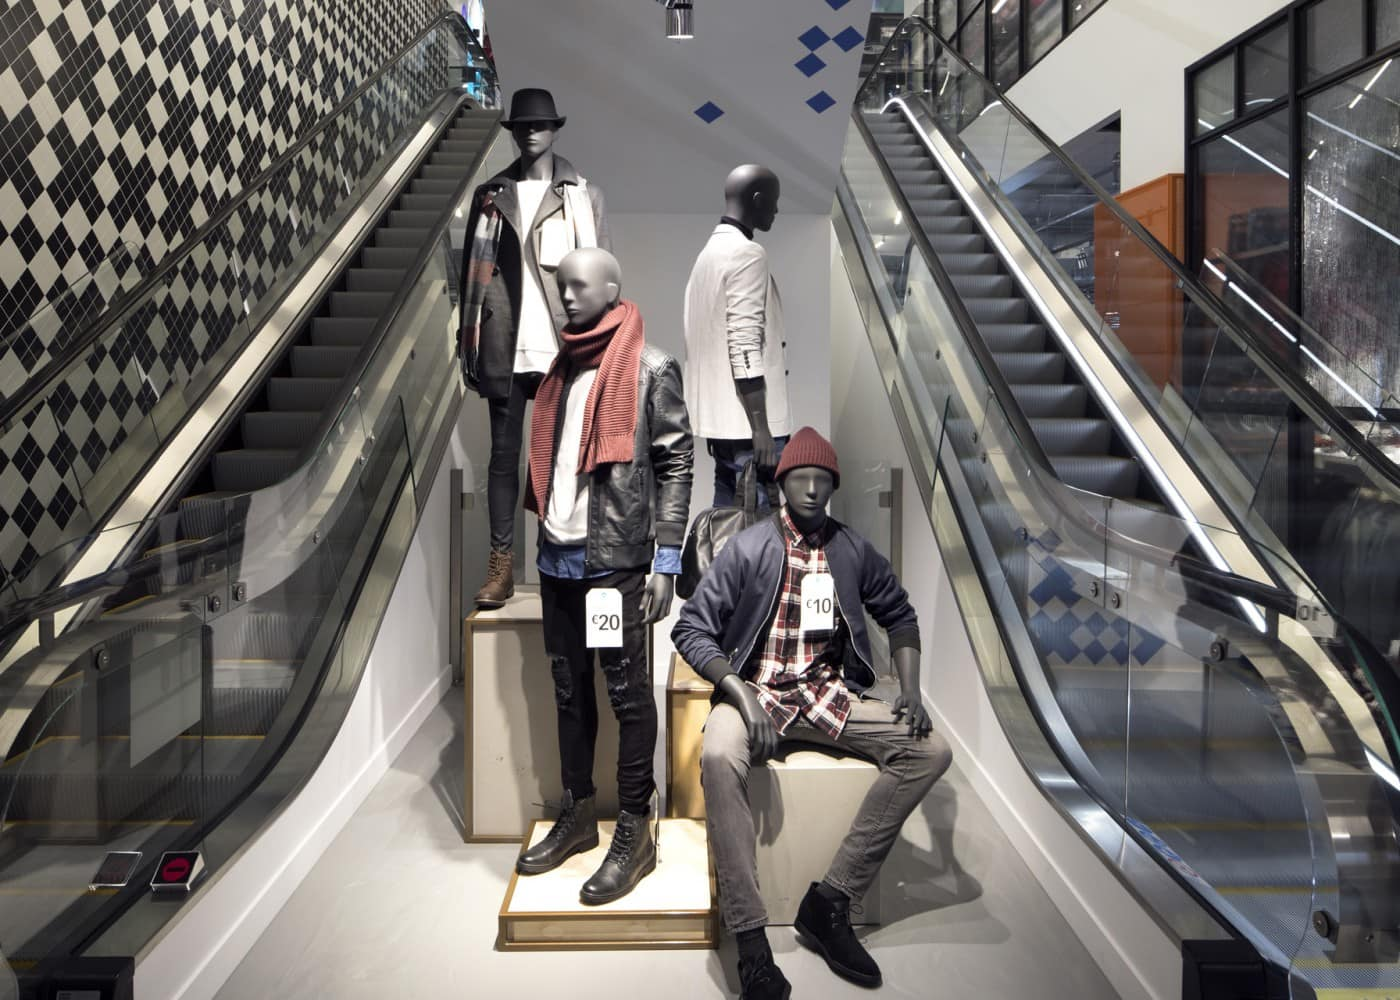 retail lighting design: Primark Amsterdam mannequins and escalators